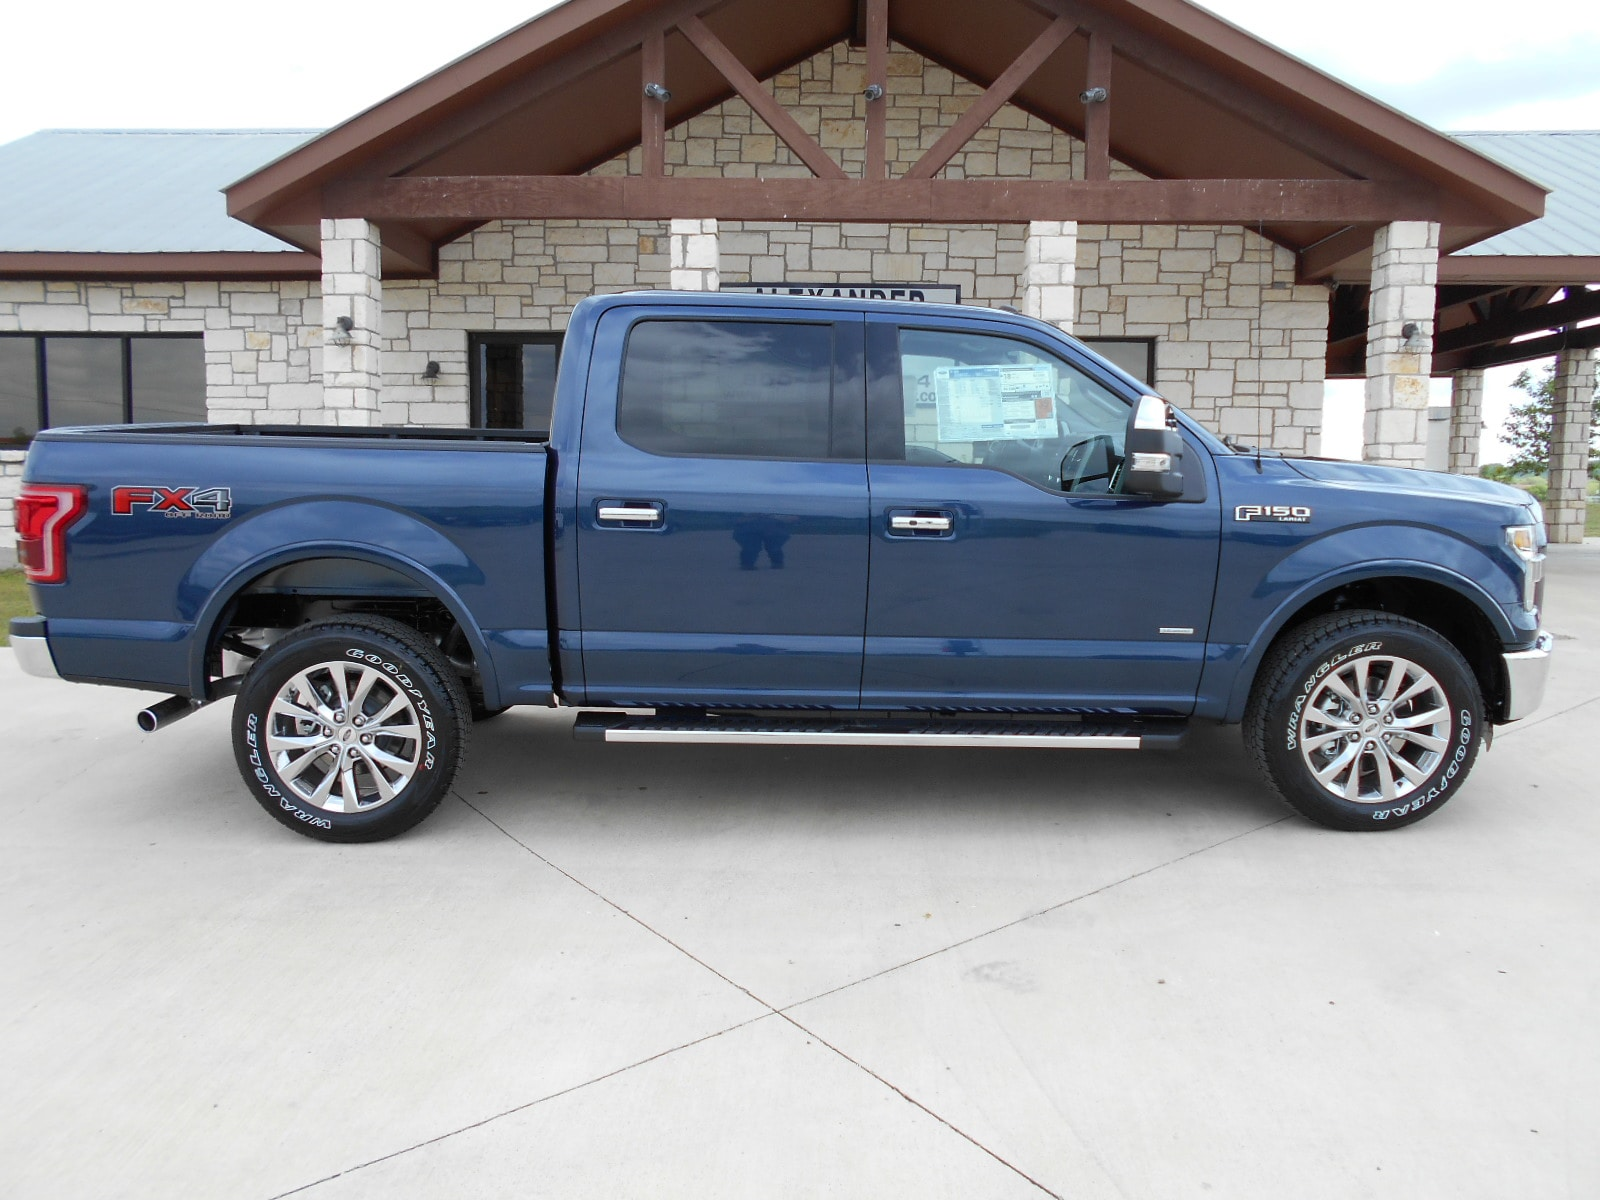 2016 ford f 150 crew cab pictures to pin on pinterest pinsdaddy. Black Bedroom Furniture Sets. Home Design Ideas